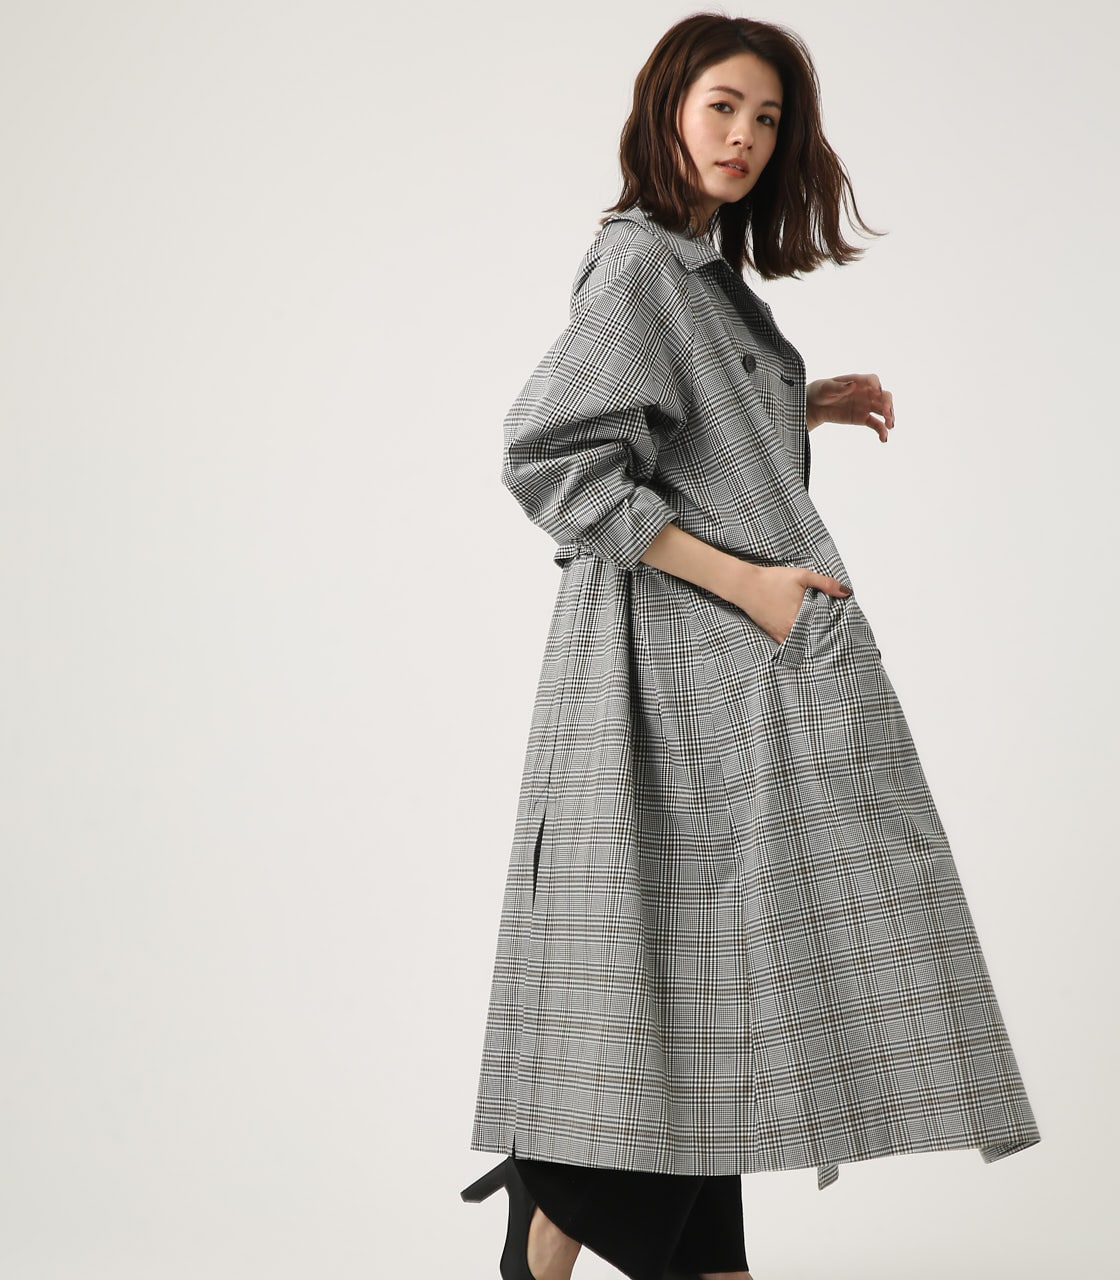 【AZUL BY MOUSSY】VOLUME SLEEVE LONG TRENCH COAT 詳細画像 柄BLK 2